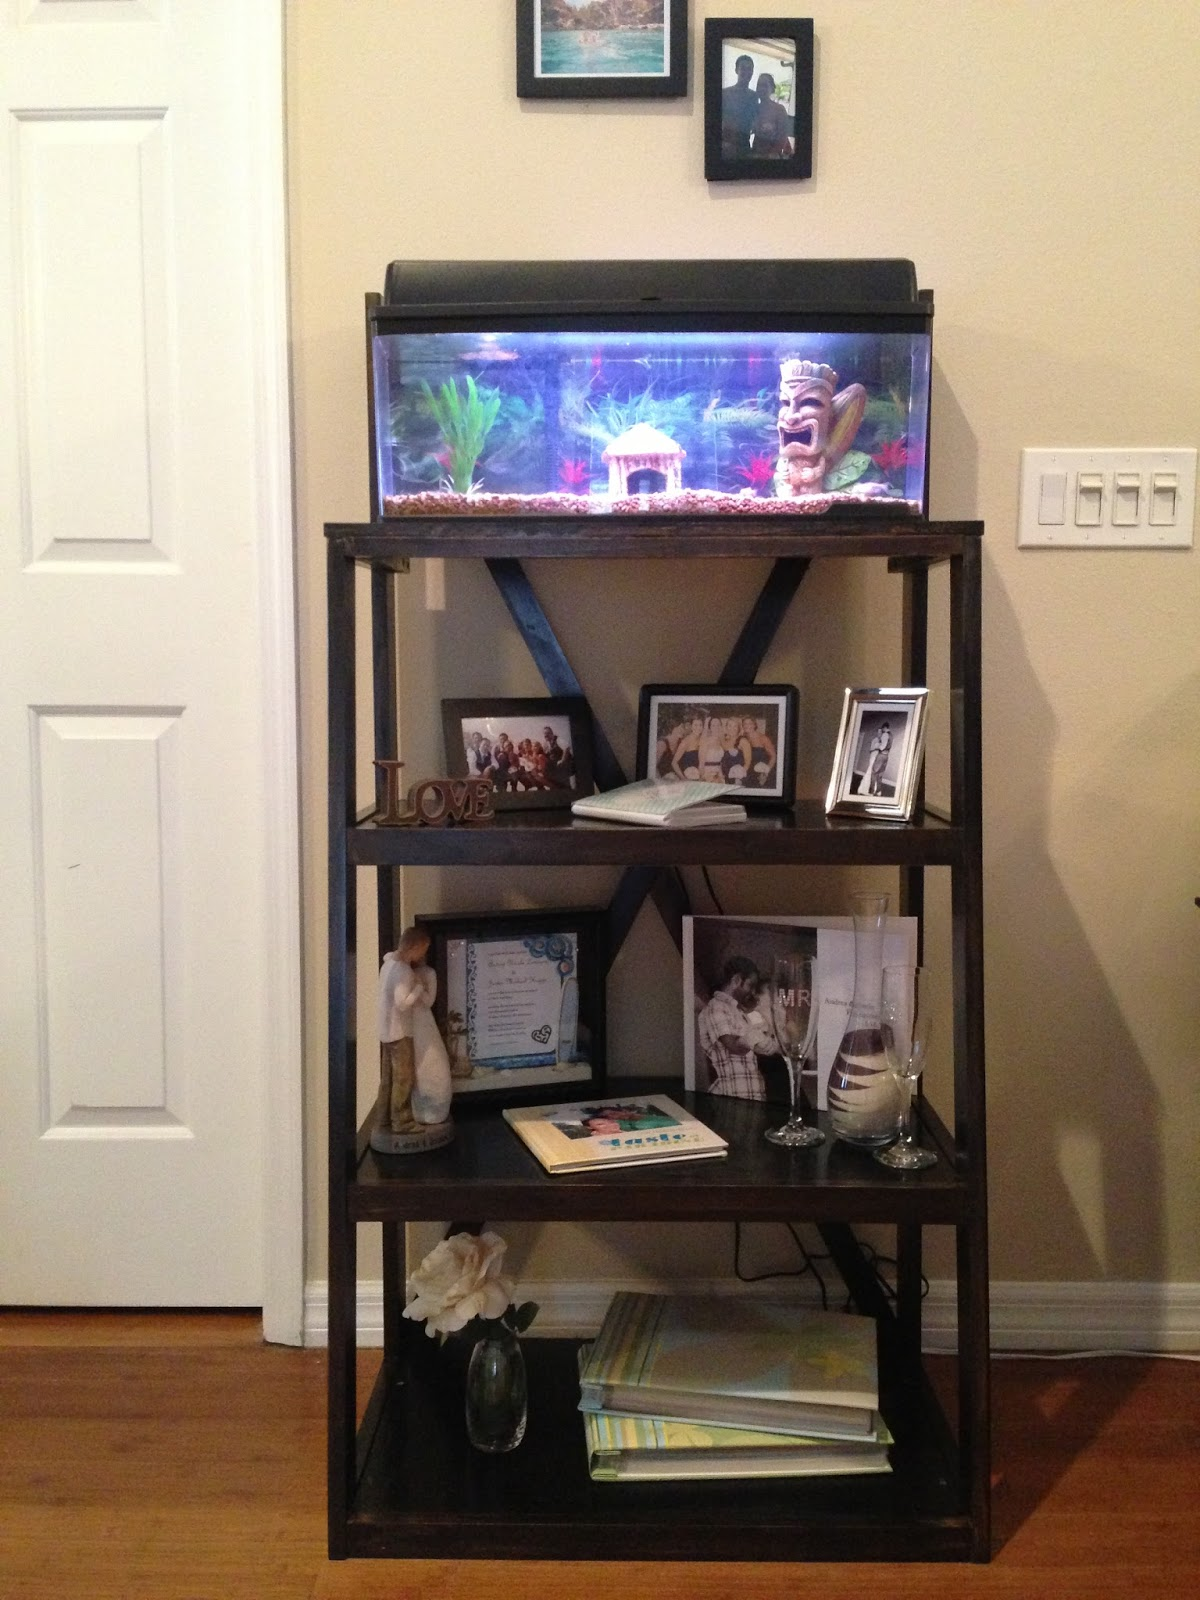 shadow organizer custom bedrooms system shelving ideas ways bookshelves your small home own bathroom closet cheap in with diy es books to brilliant shelves ikea s bookcases very for these bookcase build short the display replace storage bookshelf spaces tiered decor box creative tiny